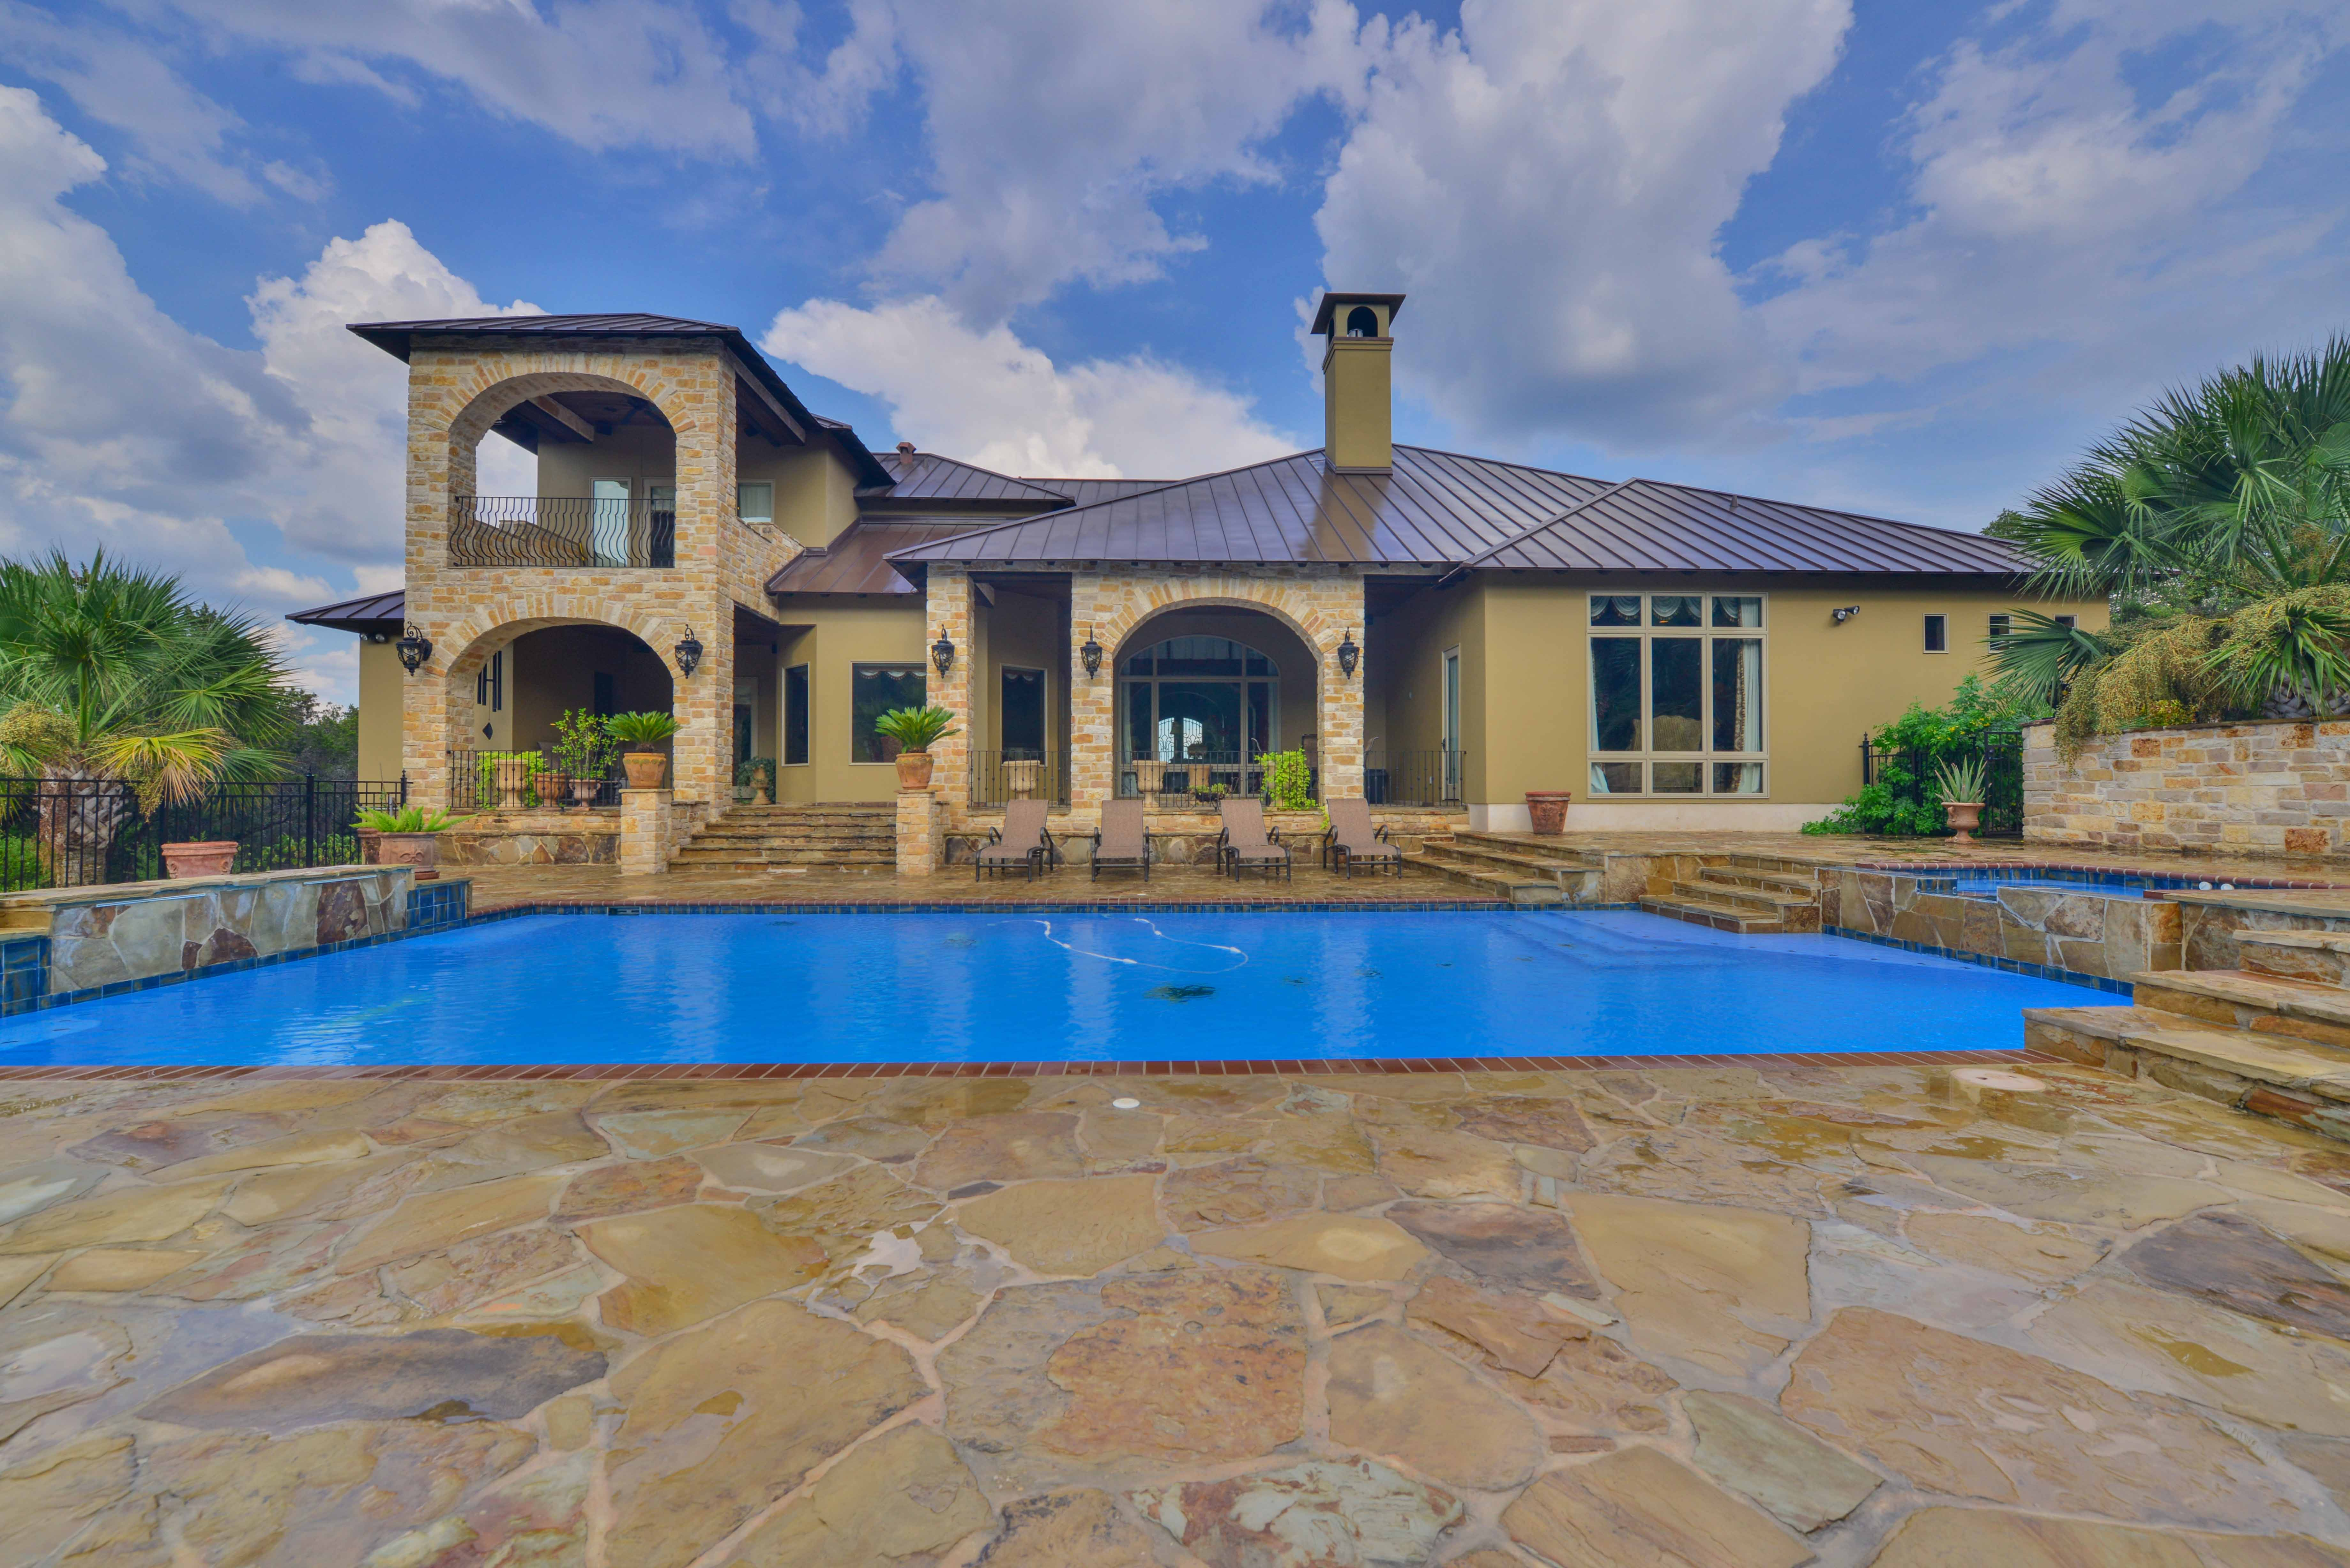 Here Is A 3 Month Summary Of Luxury Home Sales In San Antonio TX For 2014,  $750,000 To $1,000,000. If You Would Like A No Obligation Market Analysis  On Your ...